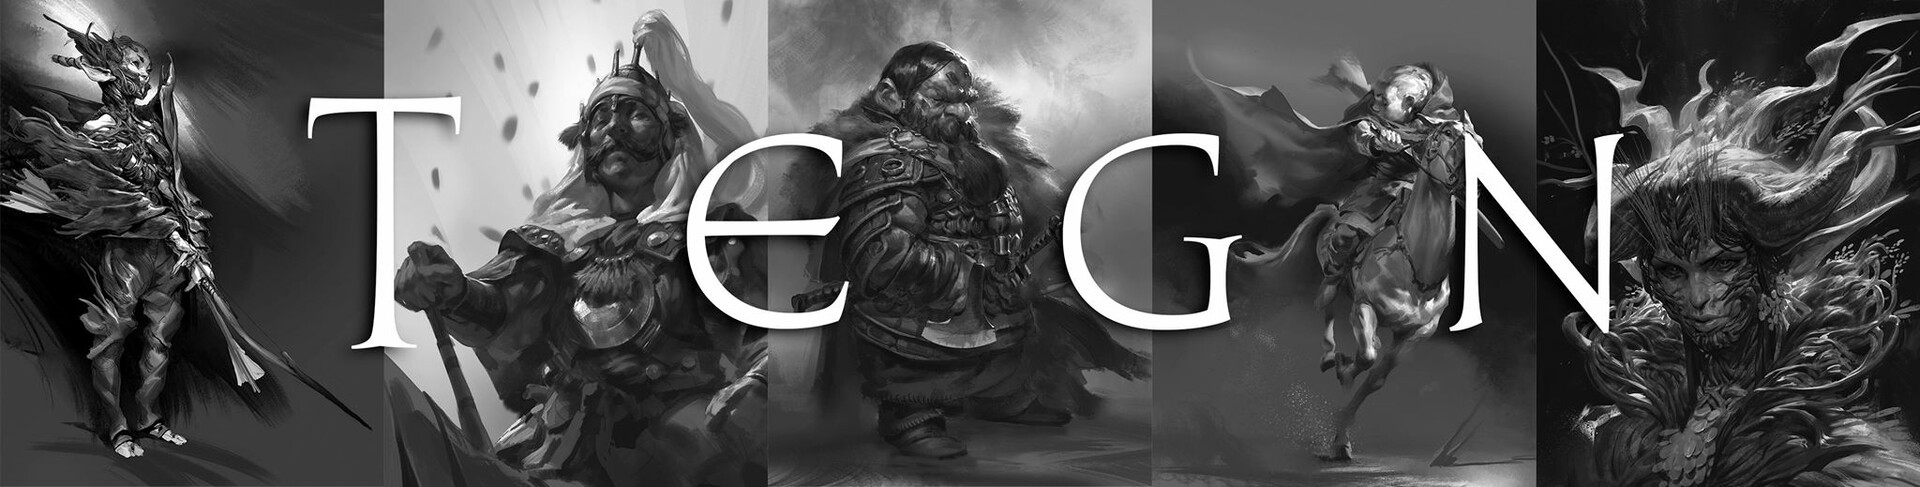 ArtStation - Even Amundsen - New Patreon and YouTube channel!